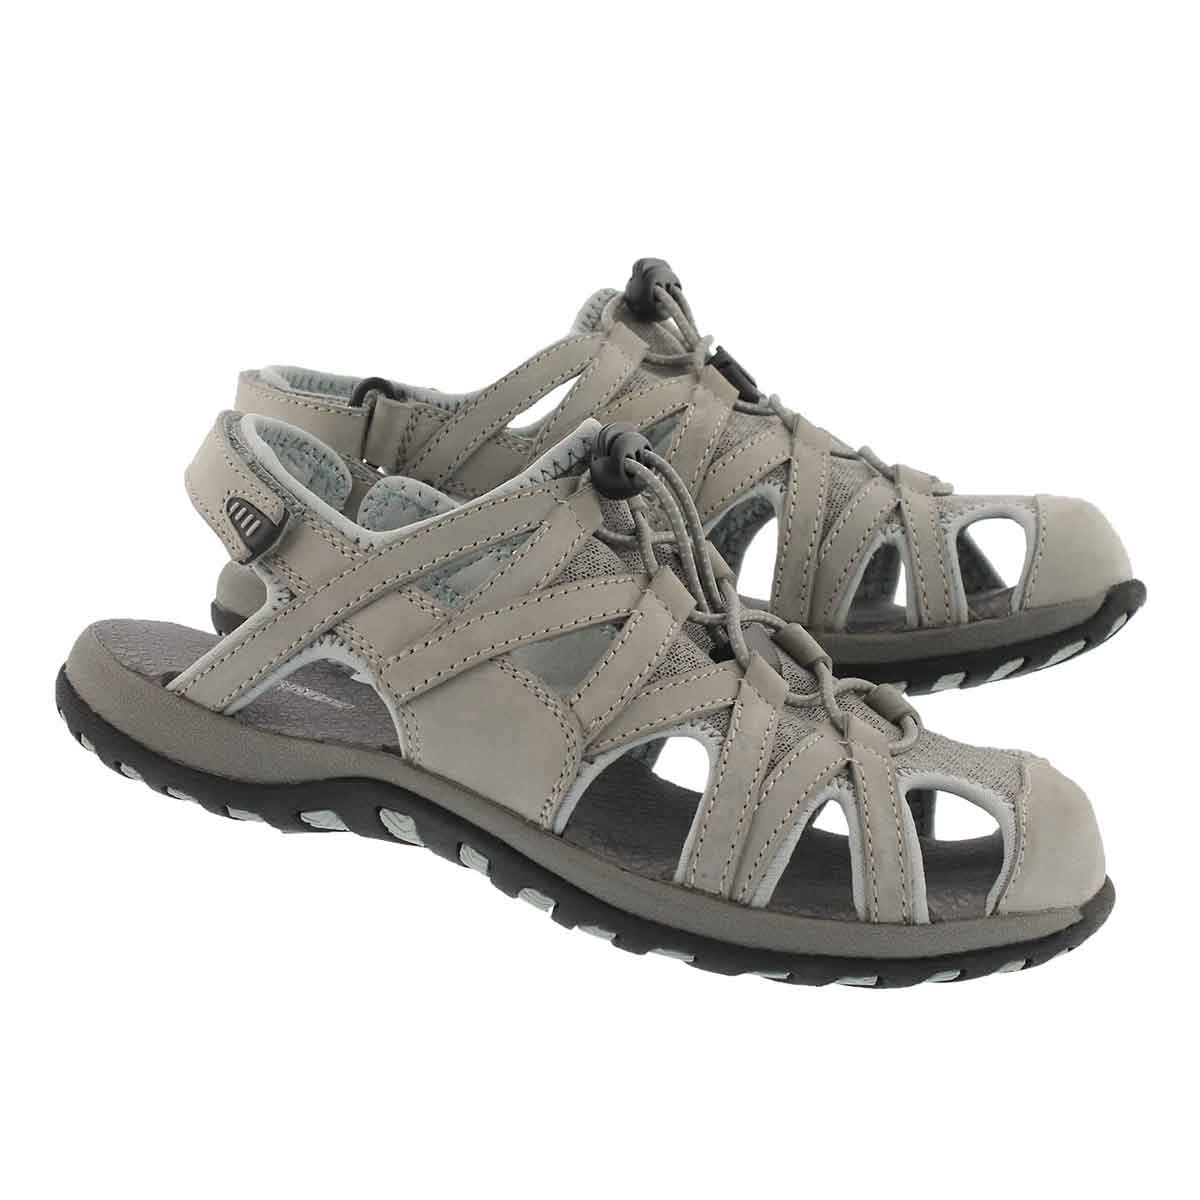 Lds Colette grey fisherman sport sandal